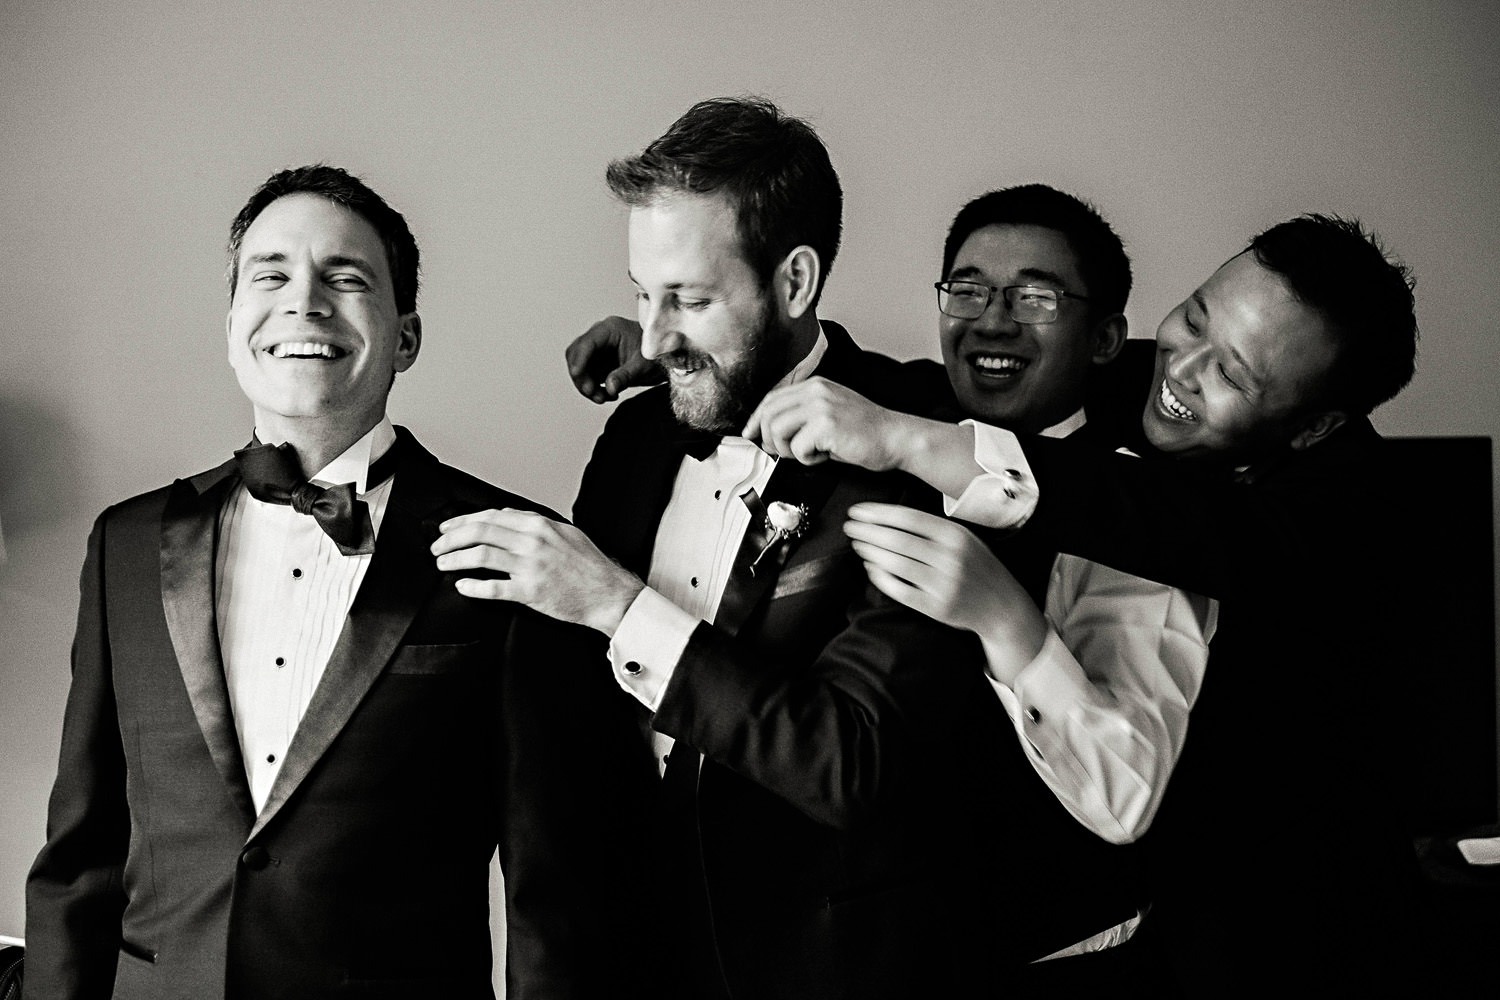 Groomsmen having fun during Chicago Getting Ready Photos